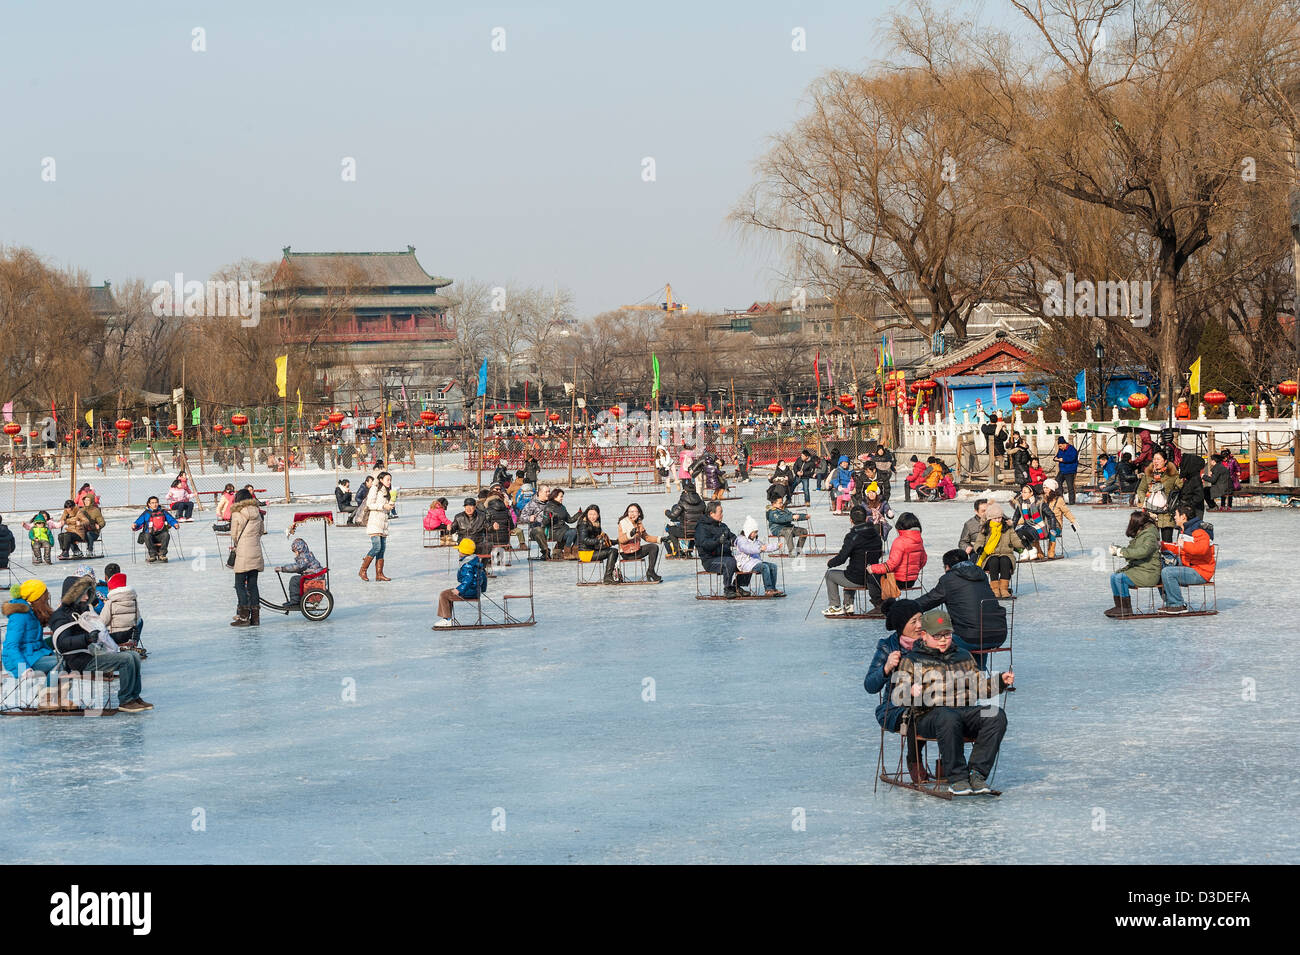 People have a fun with the sledge during the winter time, Beijing - Stock Image